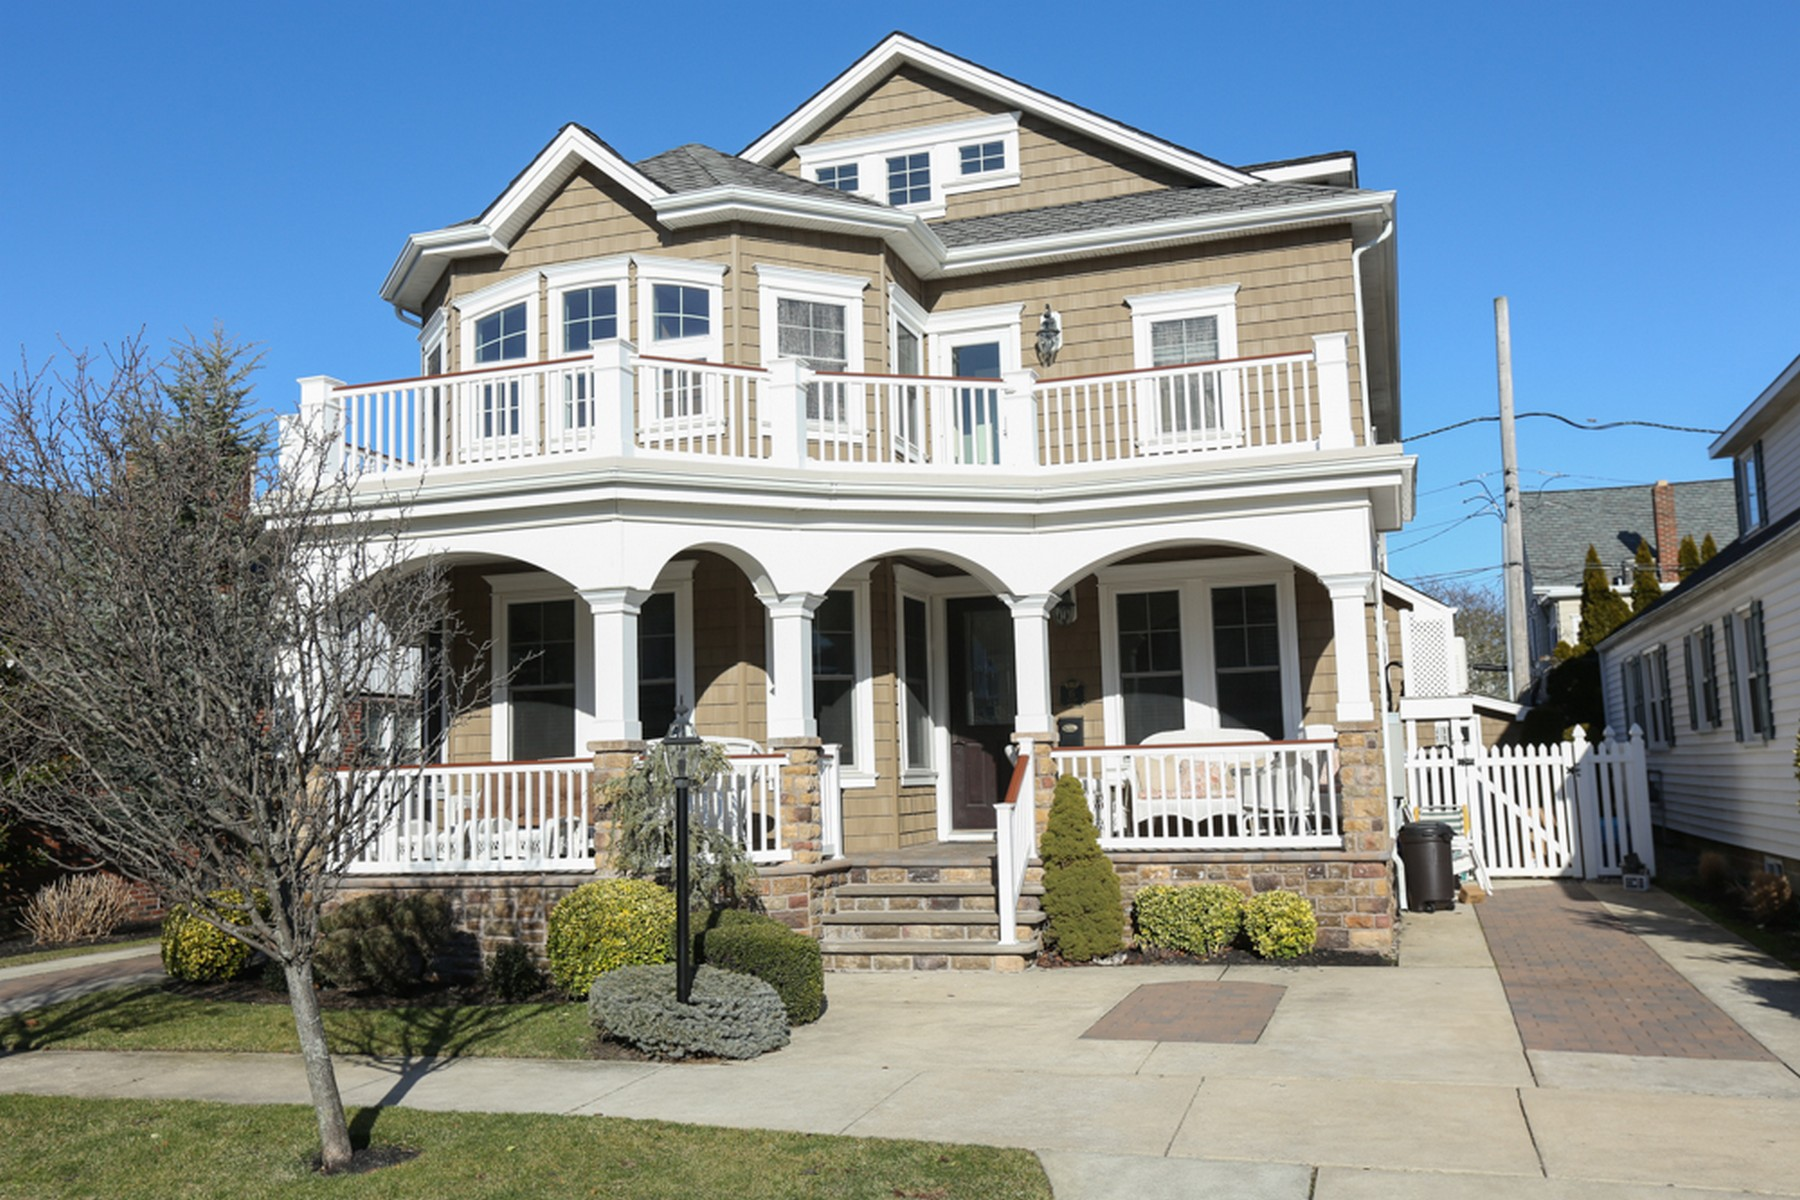 Single Family Home for Sale at 15 S Thurlow Avenue 15 S Thurlow Avenue ELEVATOR, Margate, New Jersey 08402 United States